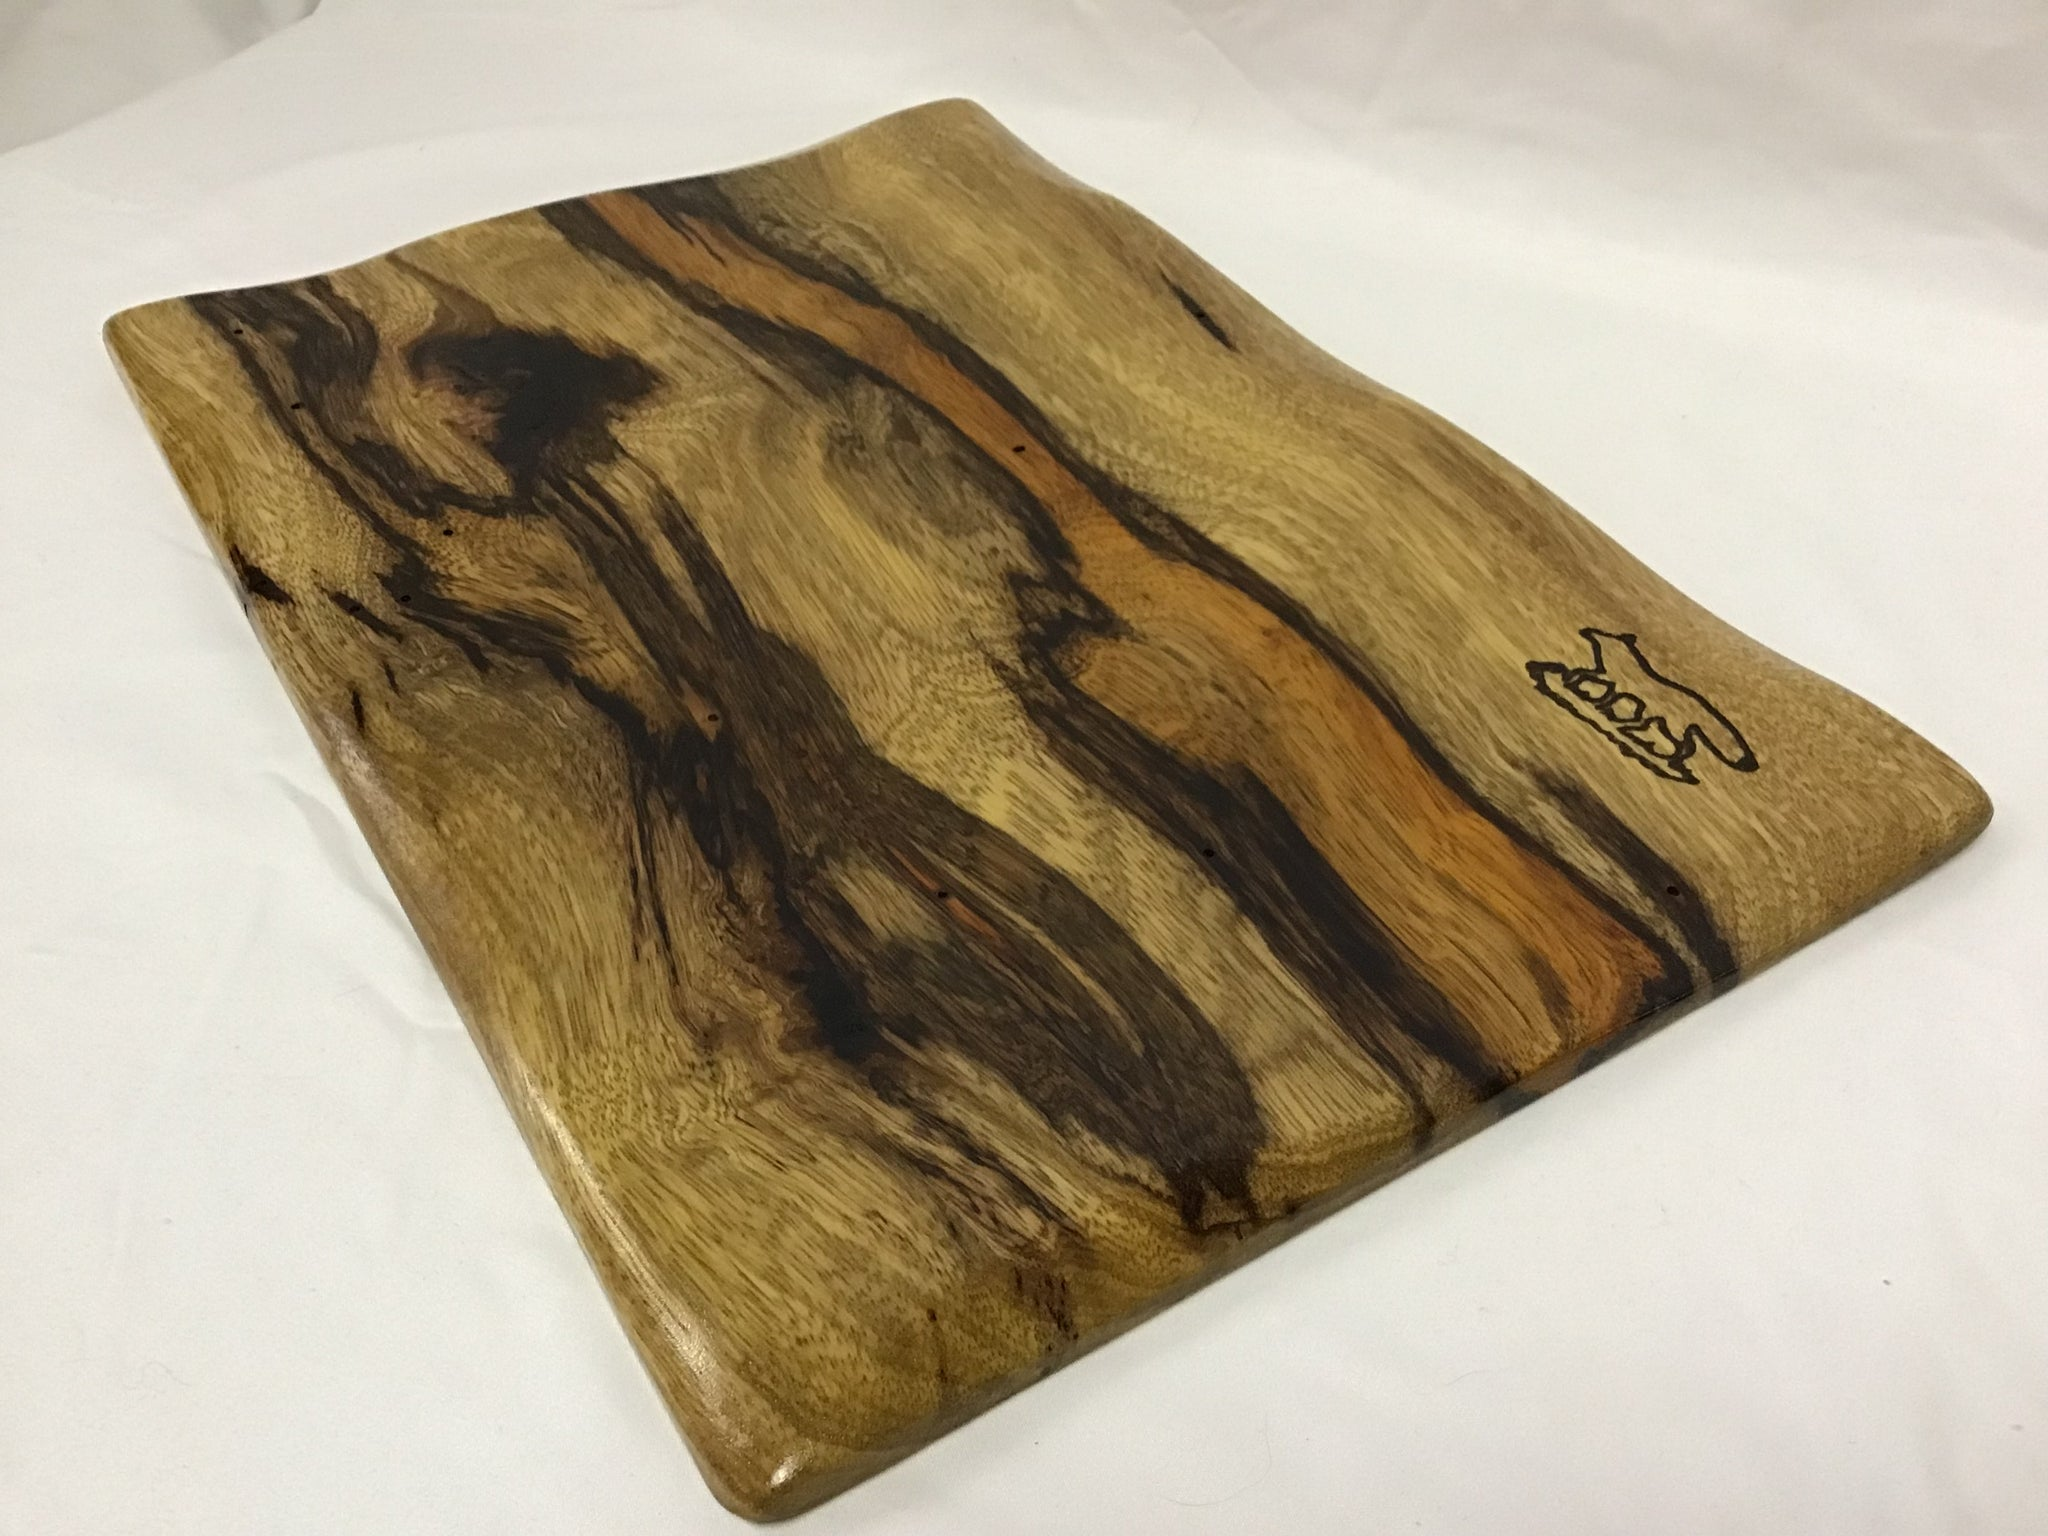 Charcuterie Board with Black Limba Wood